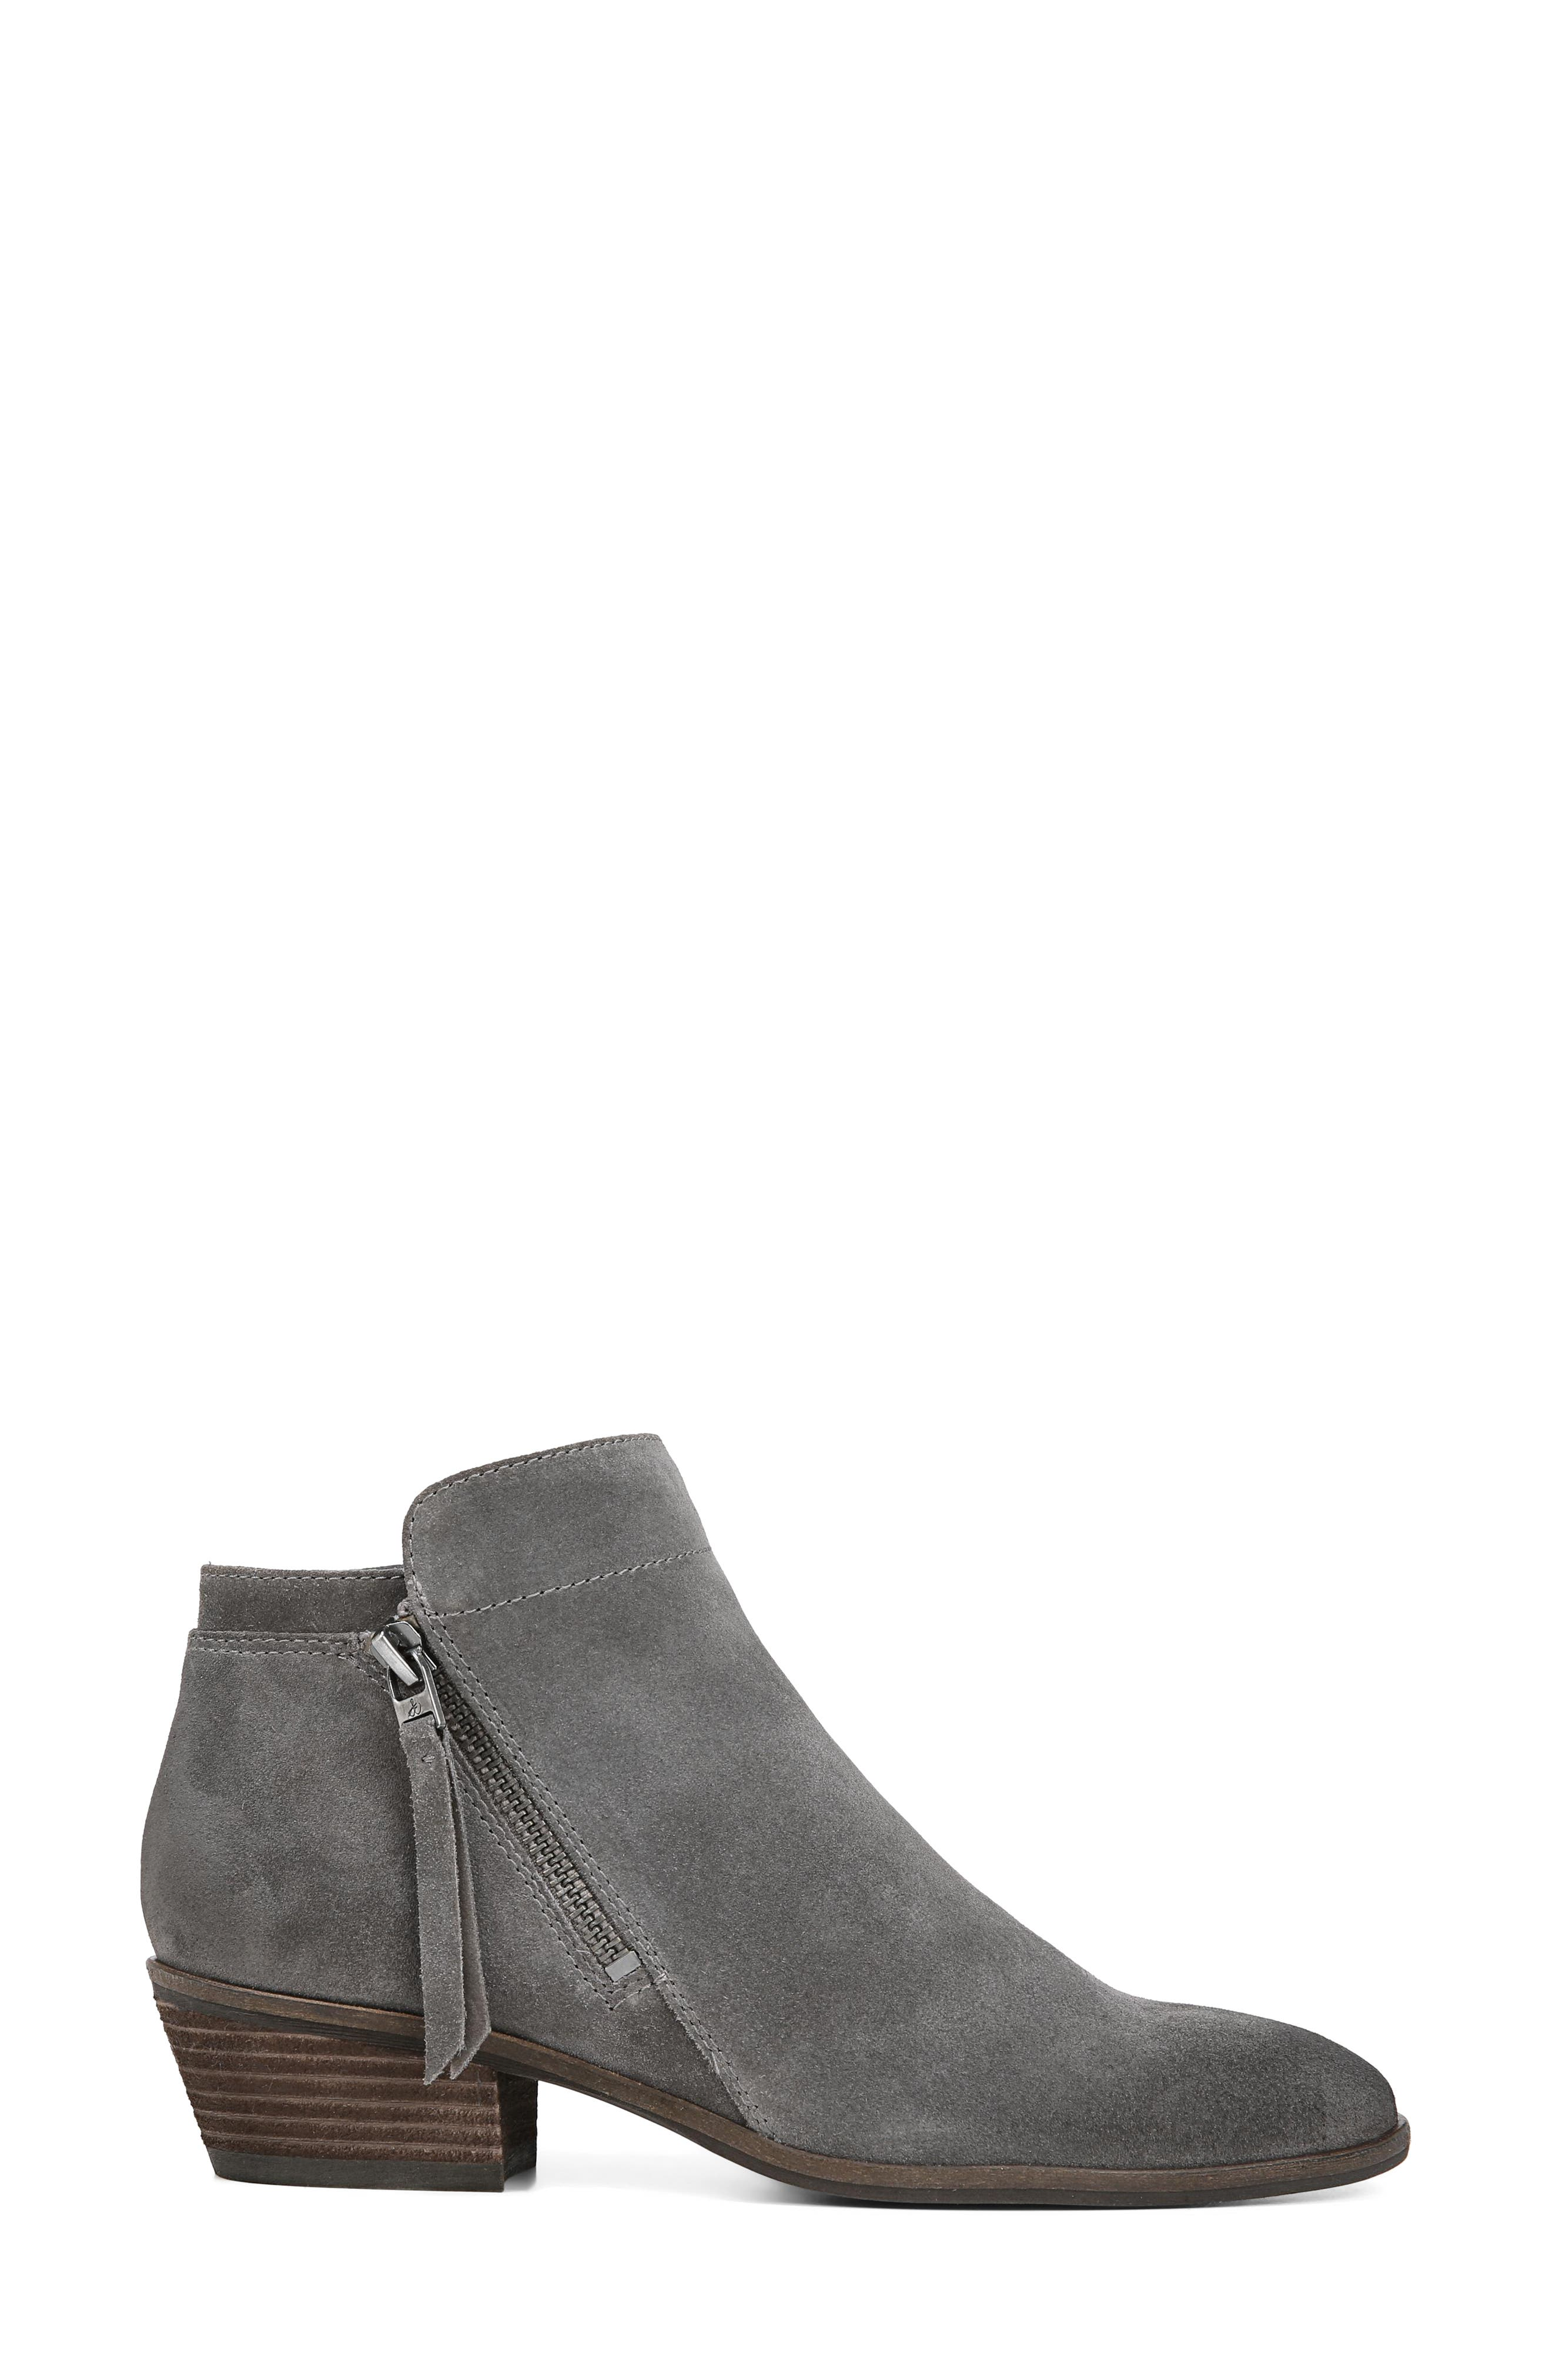 Packer Bootie,                             Alternate thumbnail 3, color,                             STEEL GREY SUEDE LEATHER